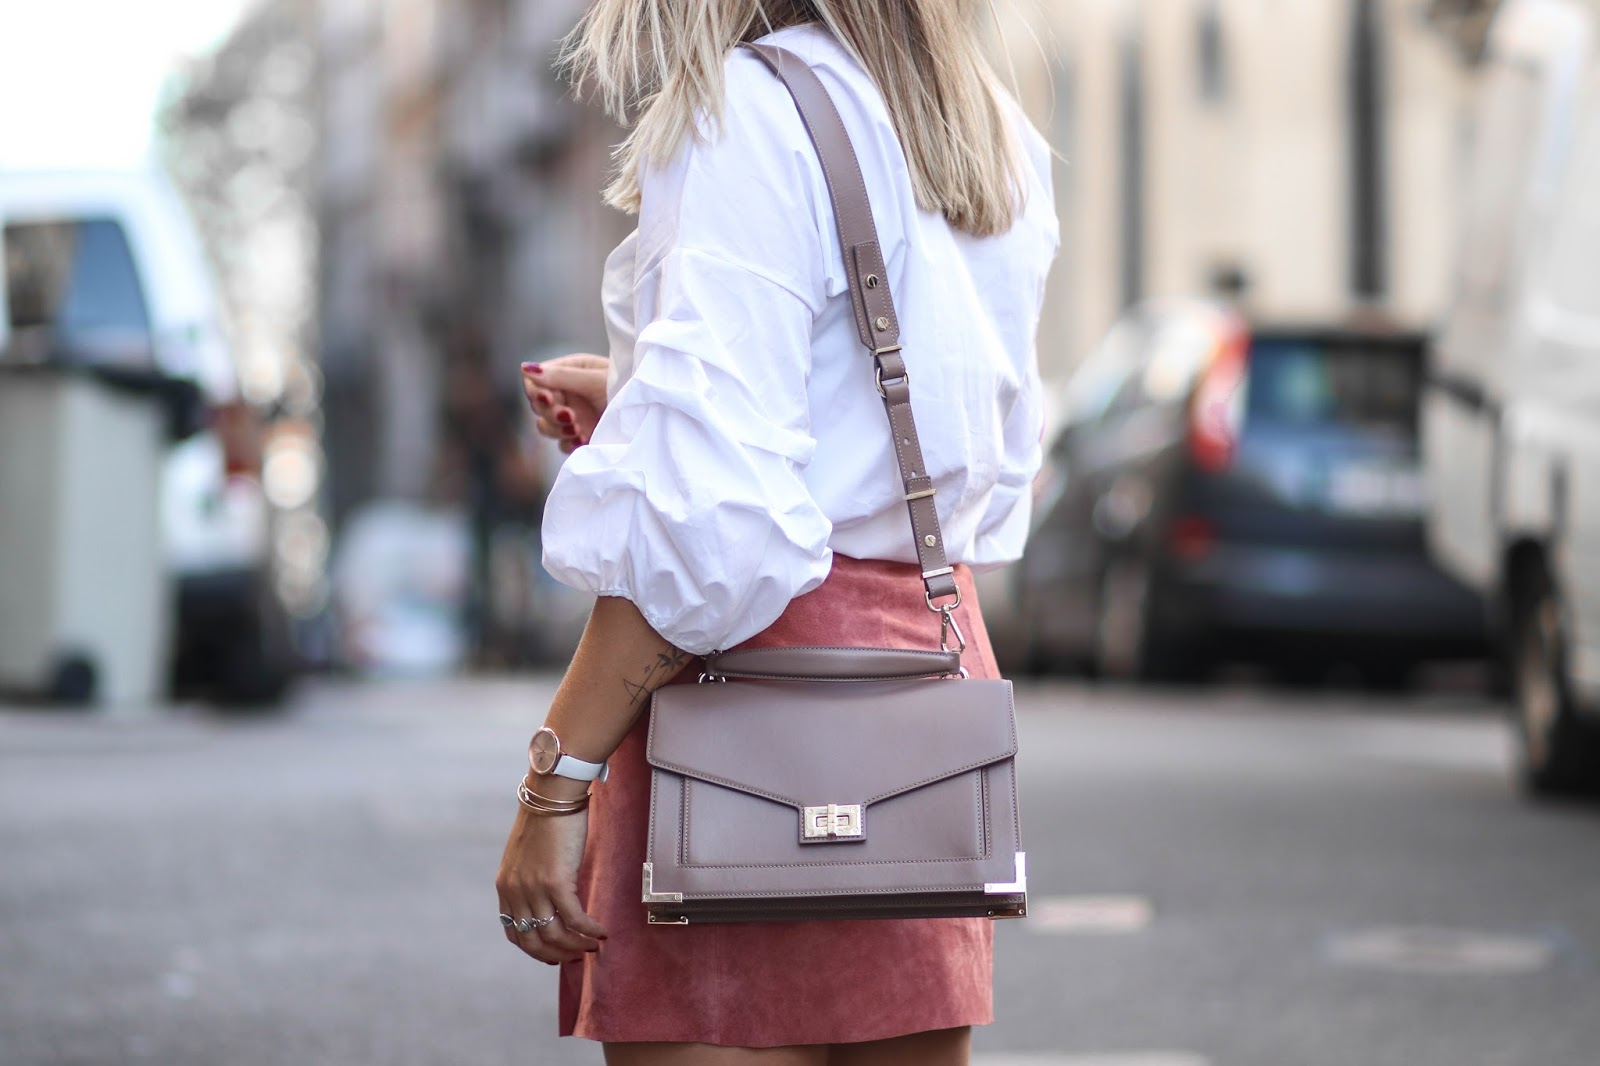 sac emily iconic the kooples parisgrenoble